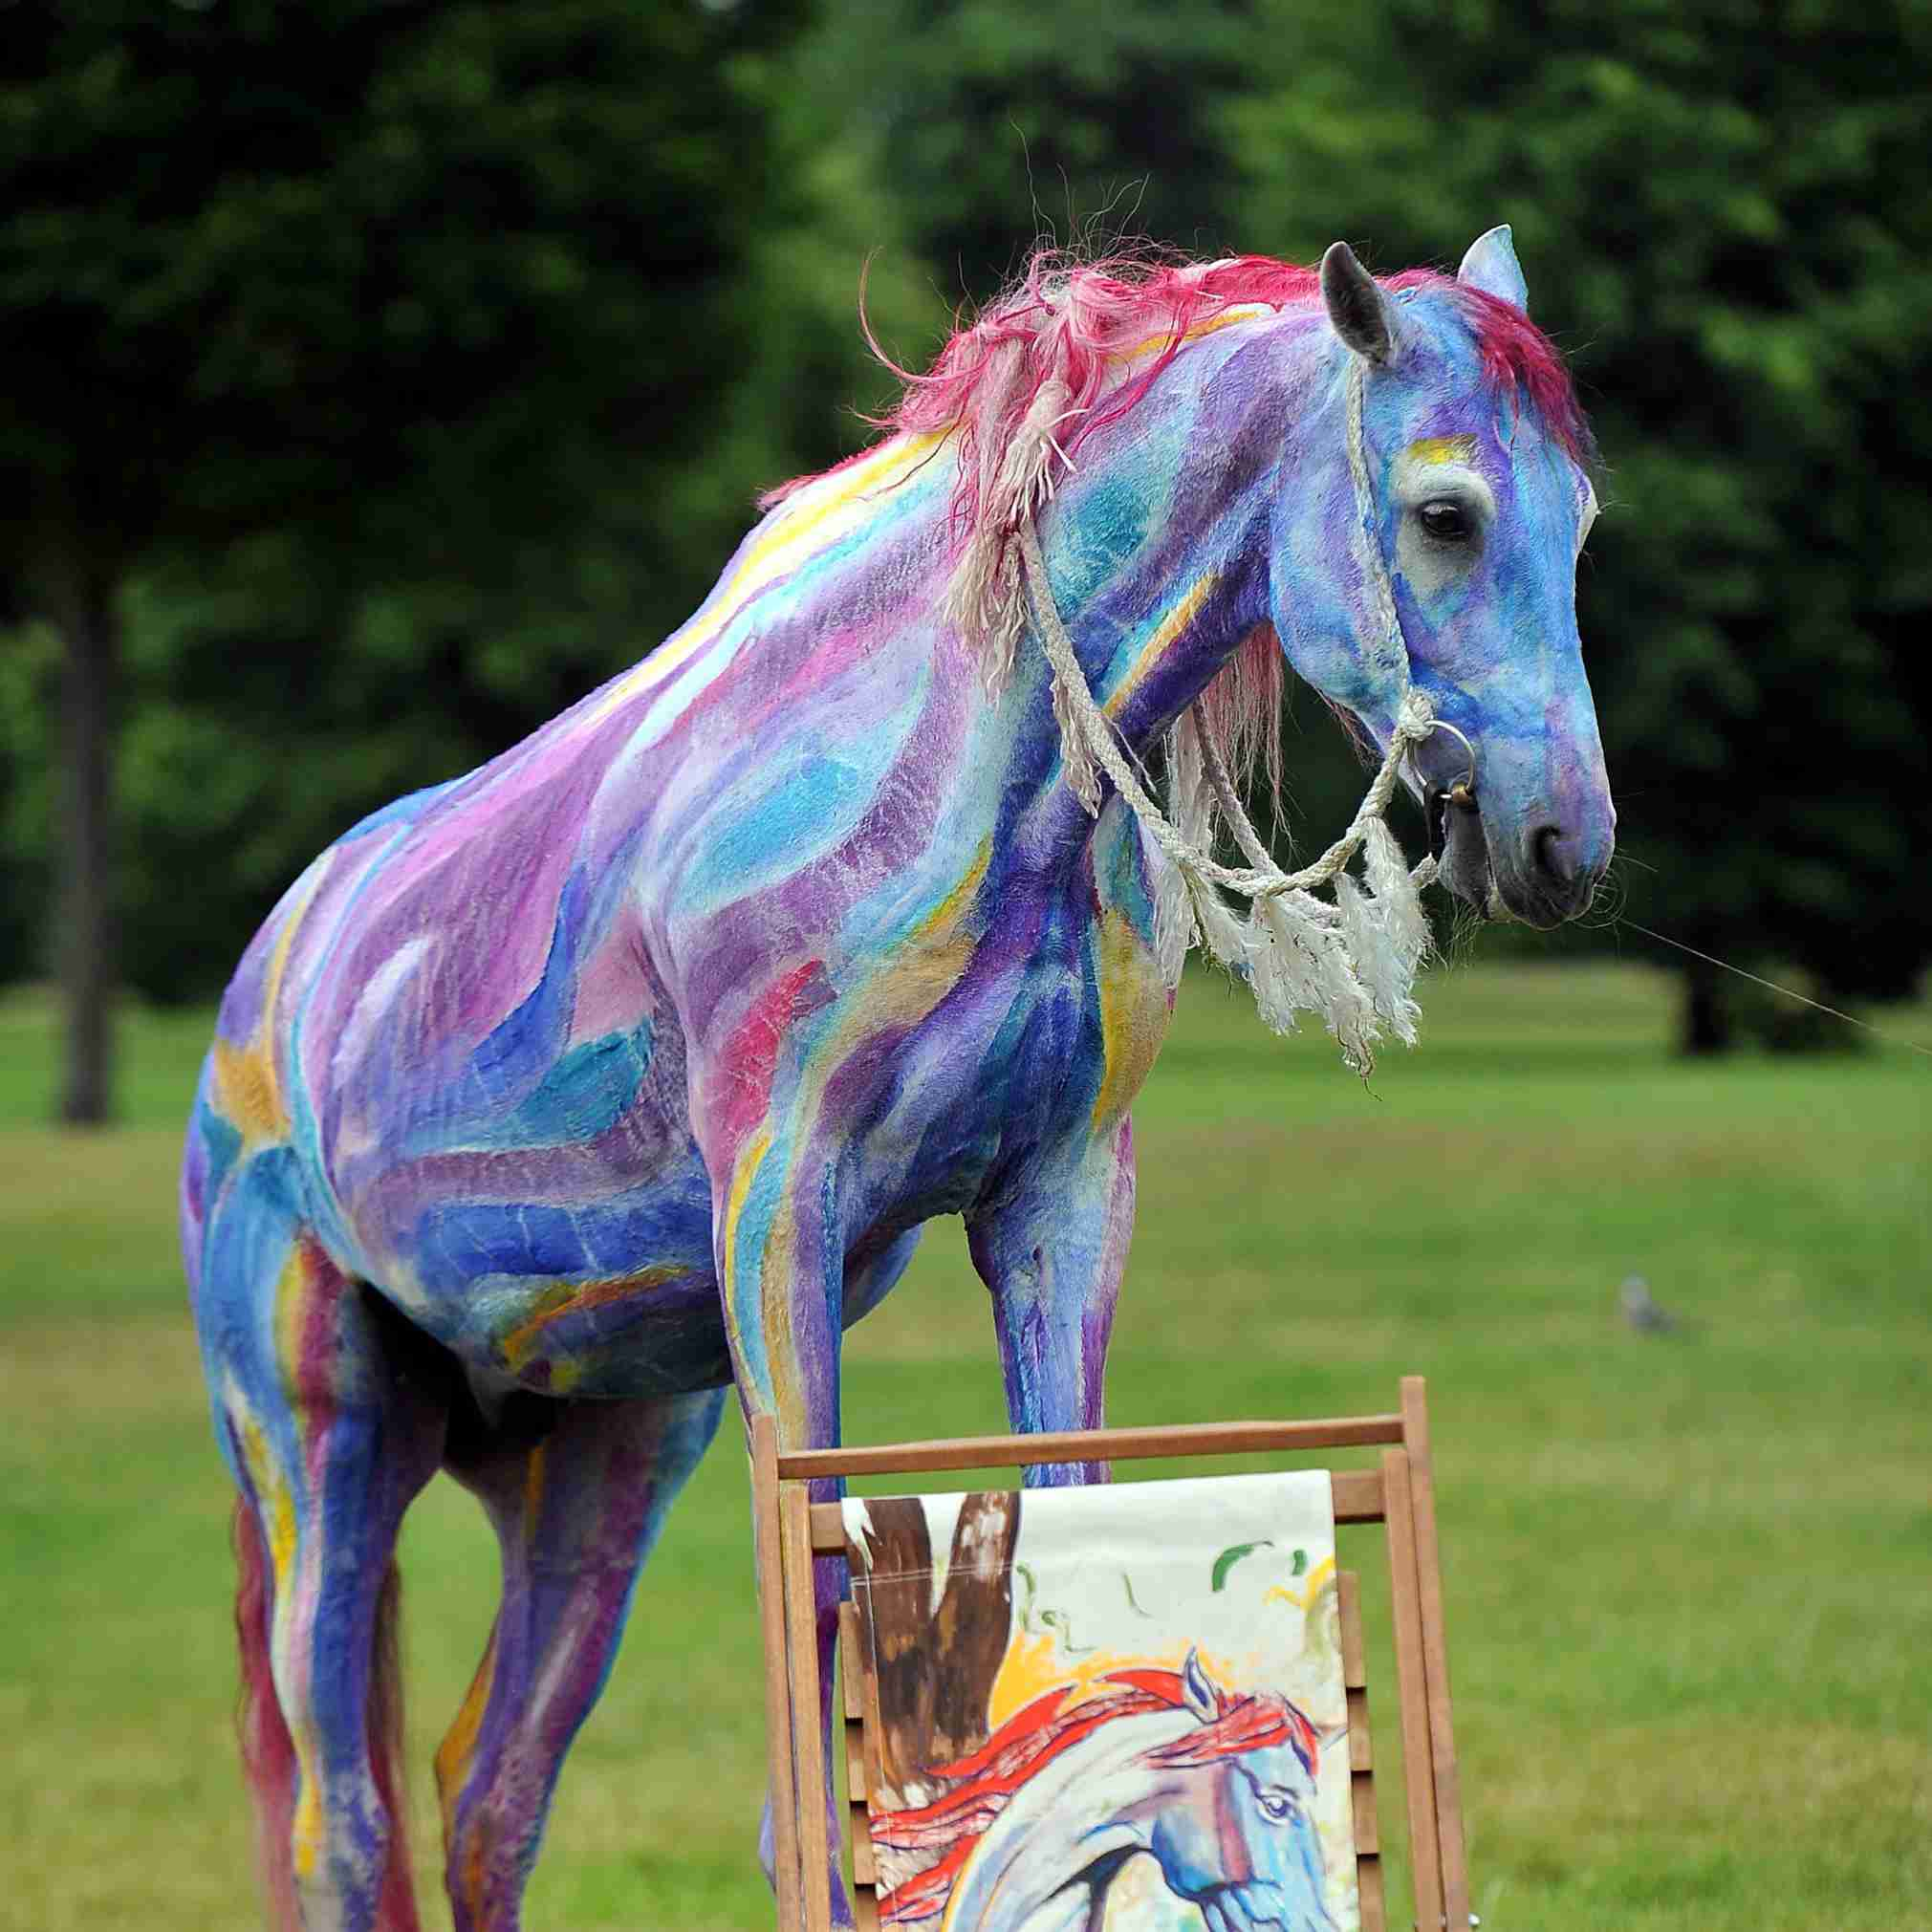 Decorate A Horse For A Parade Or Costume Class